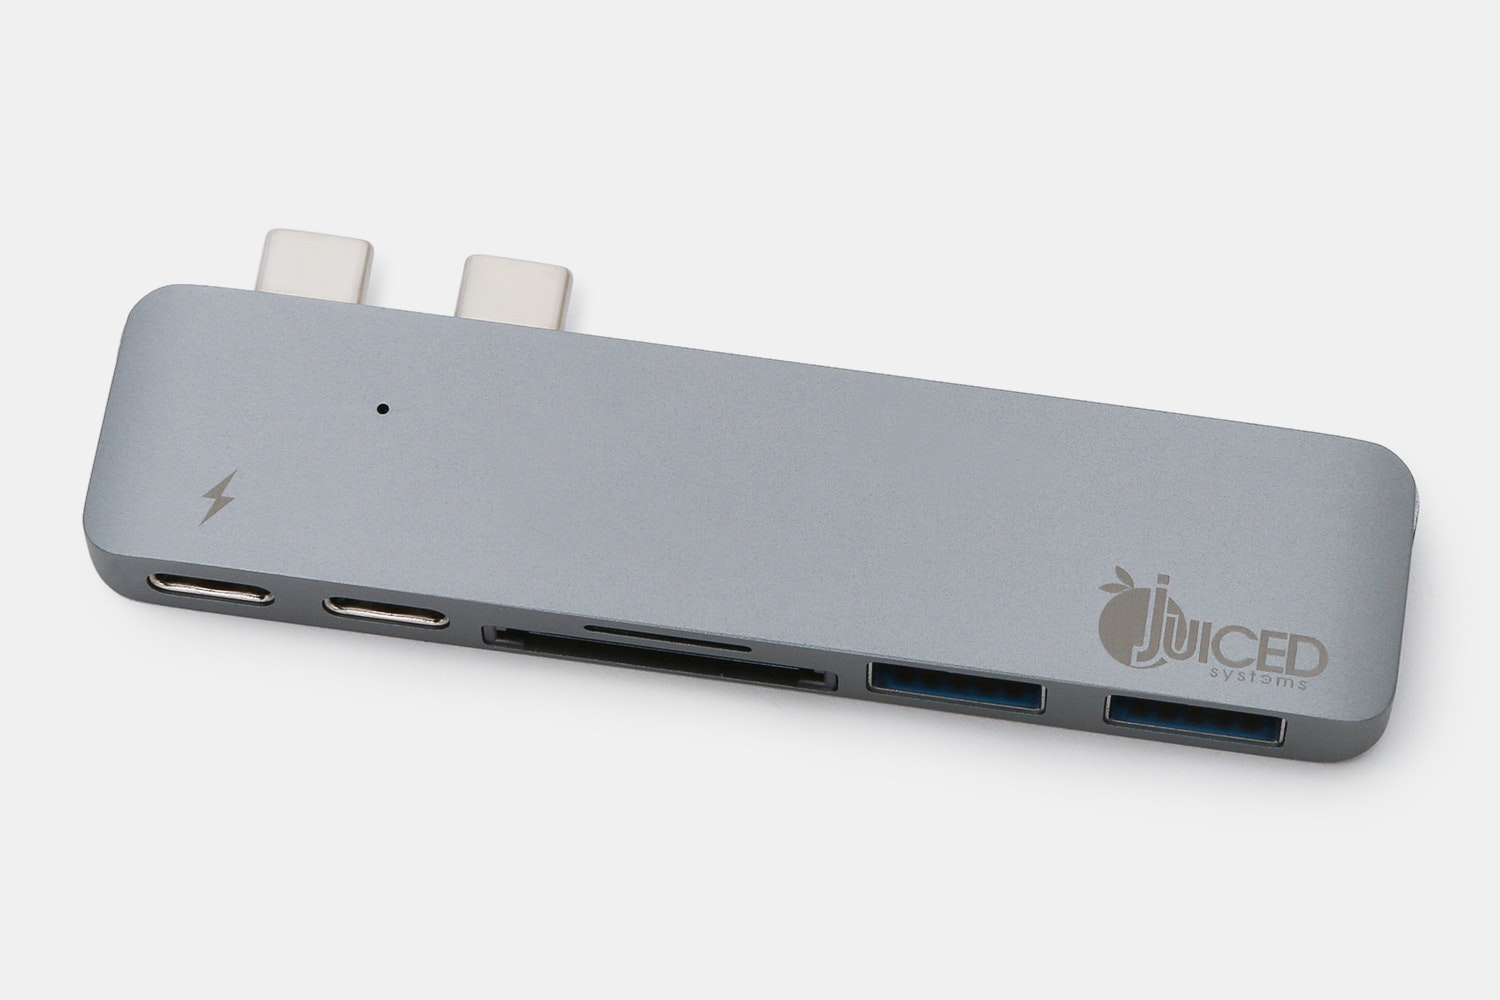 Juiced USB-C MacBook Pro 6 Port Adapter – Space Grey (+ $10)